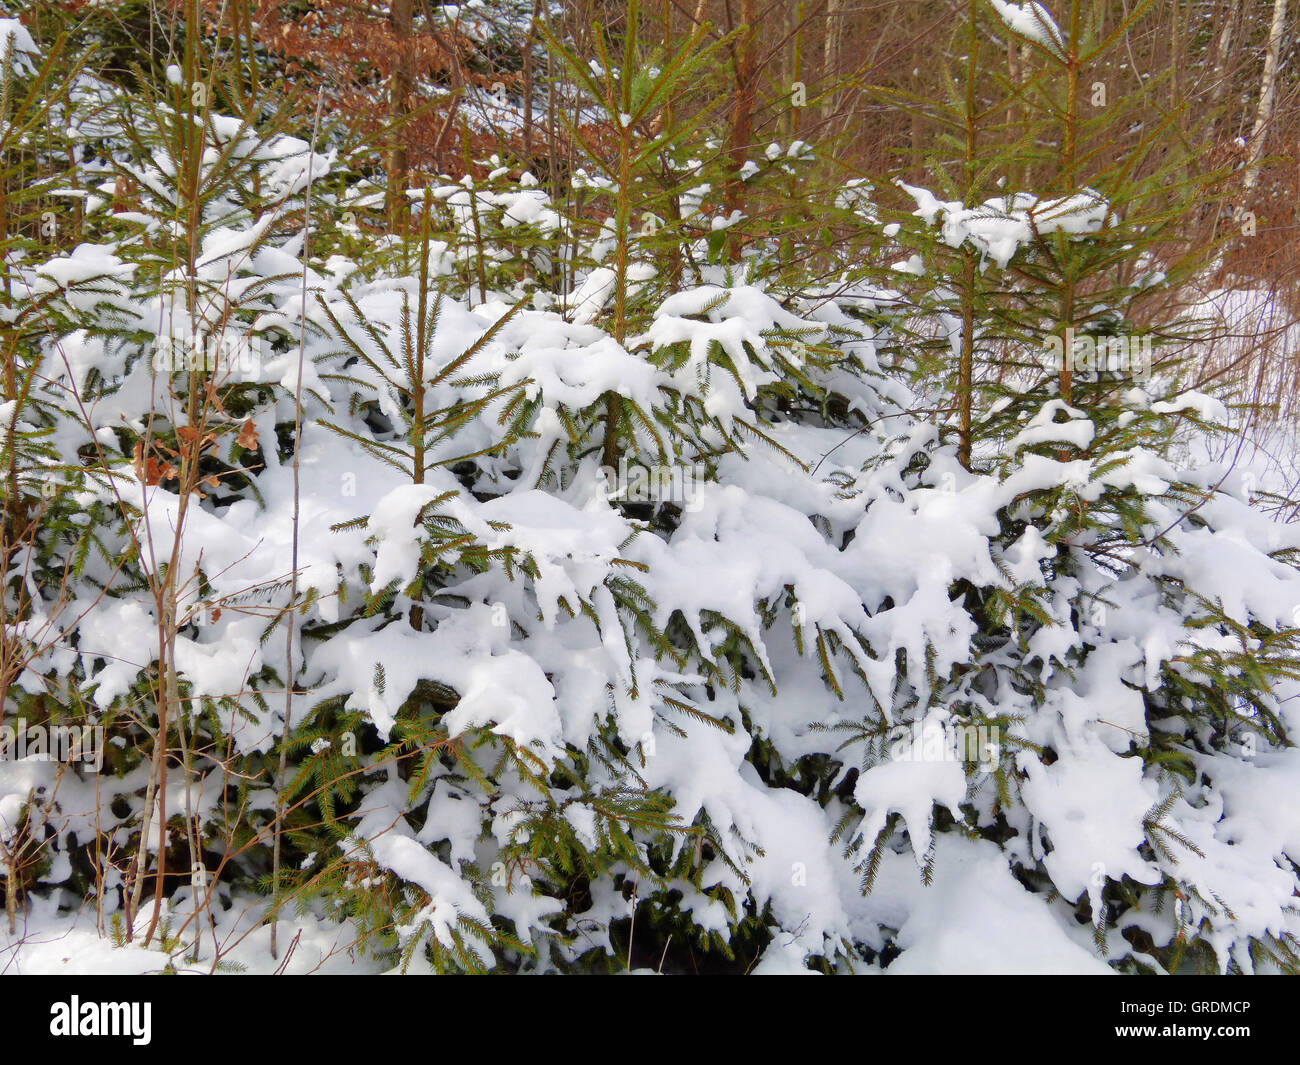 Snowy Spruces - Stock Image